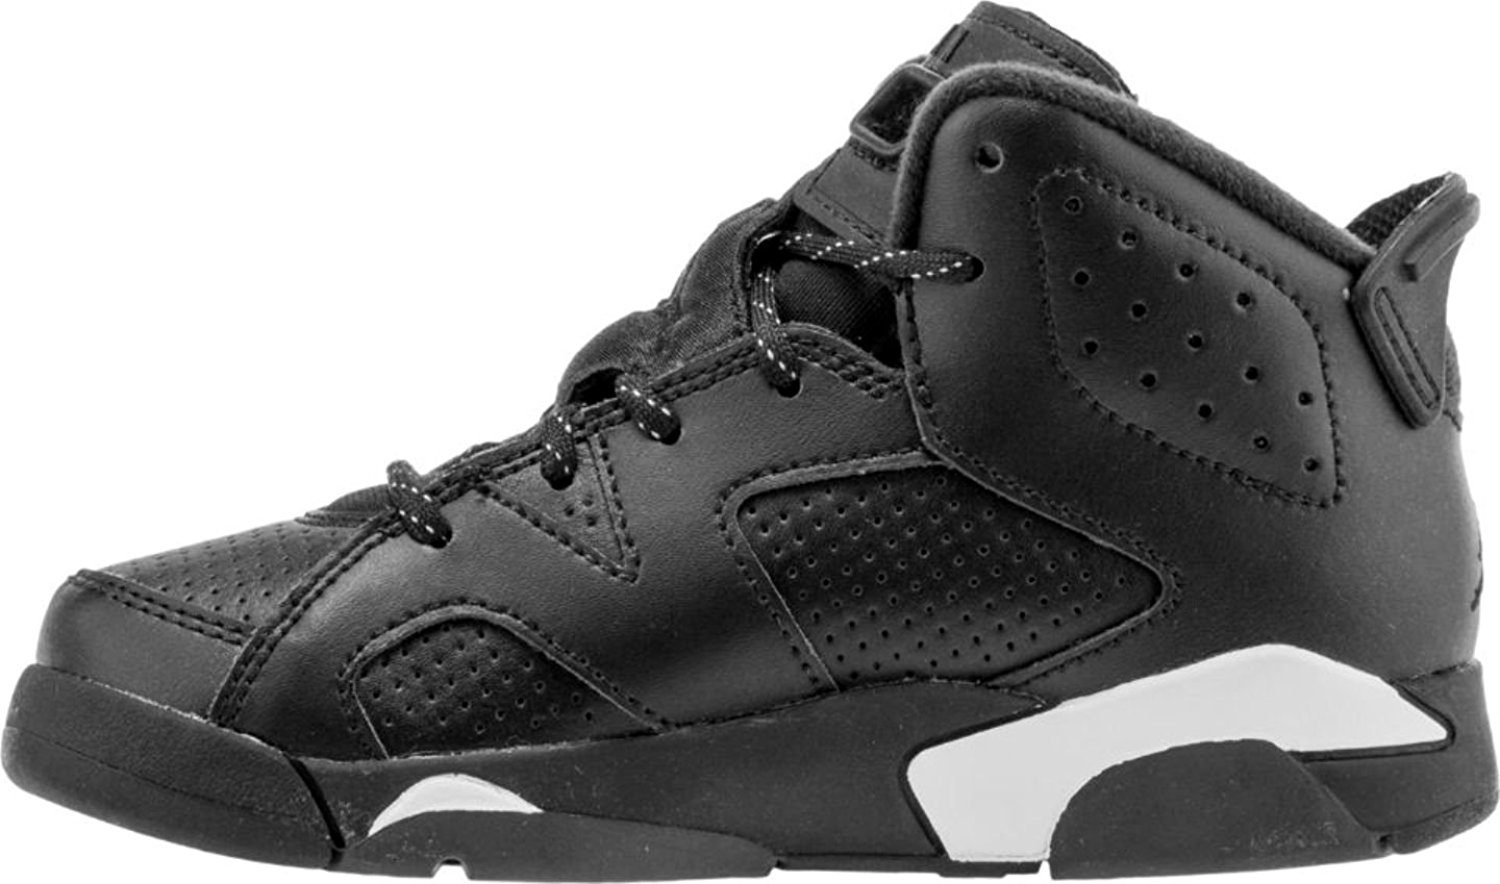 a204e1417a2f52 Nike Air Jordan 6 Retro Black Cat BP Preschool Kids Black White 384666-020 (